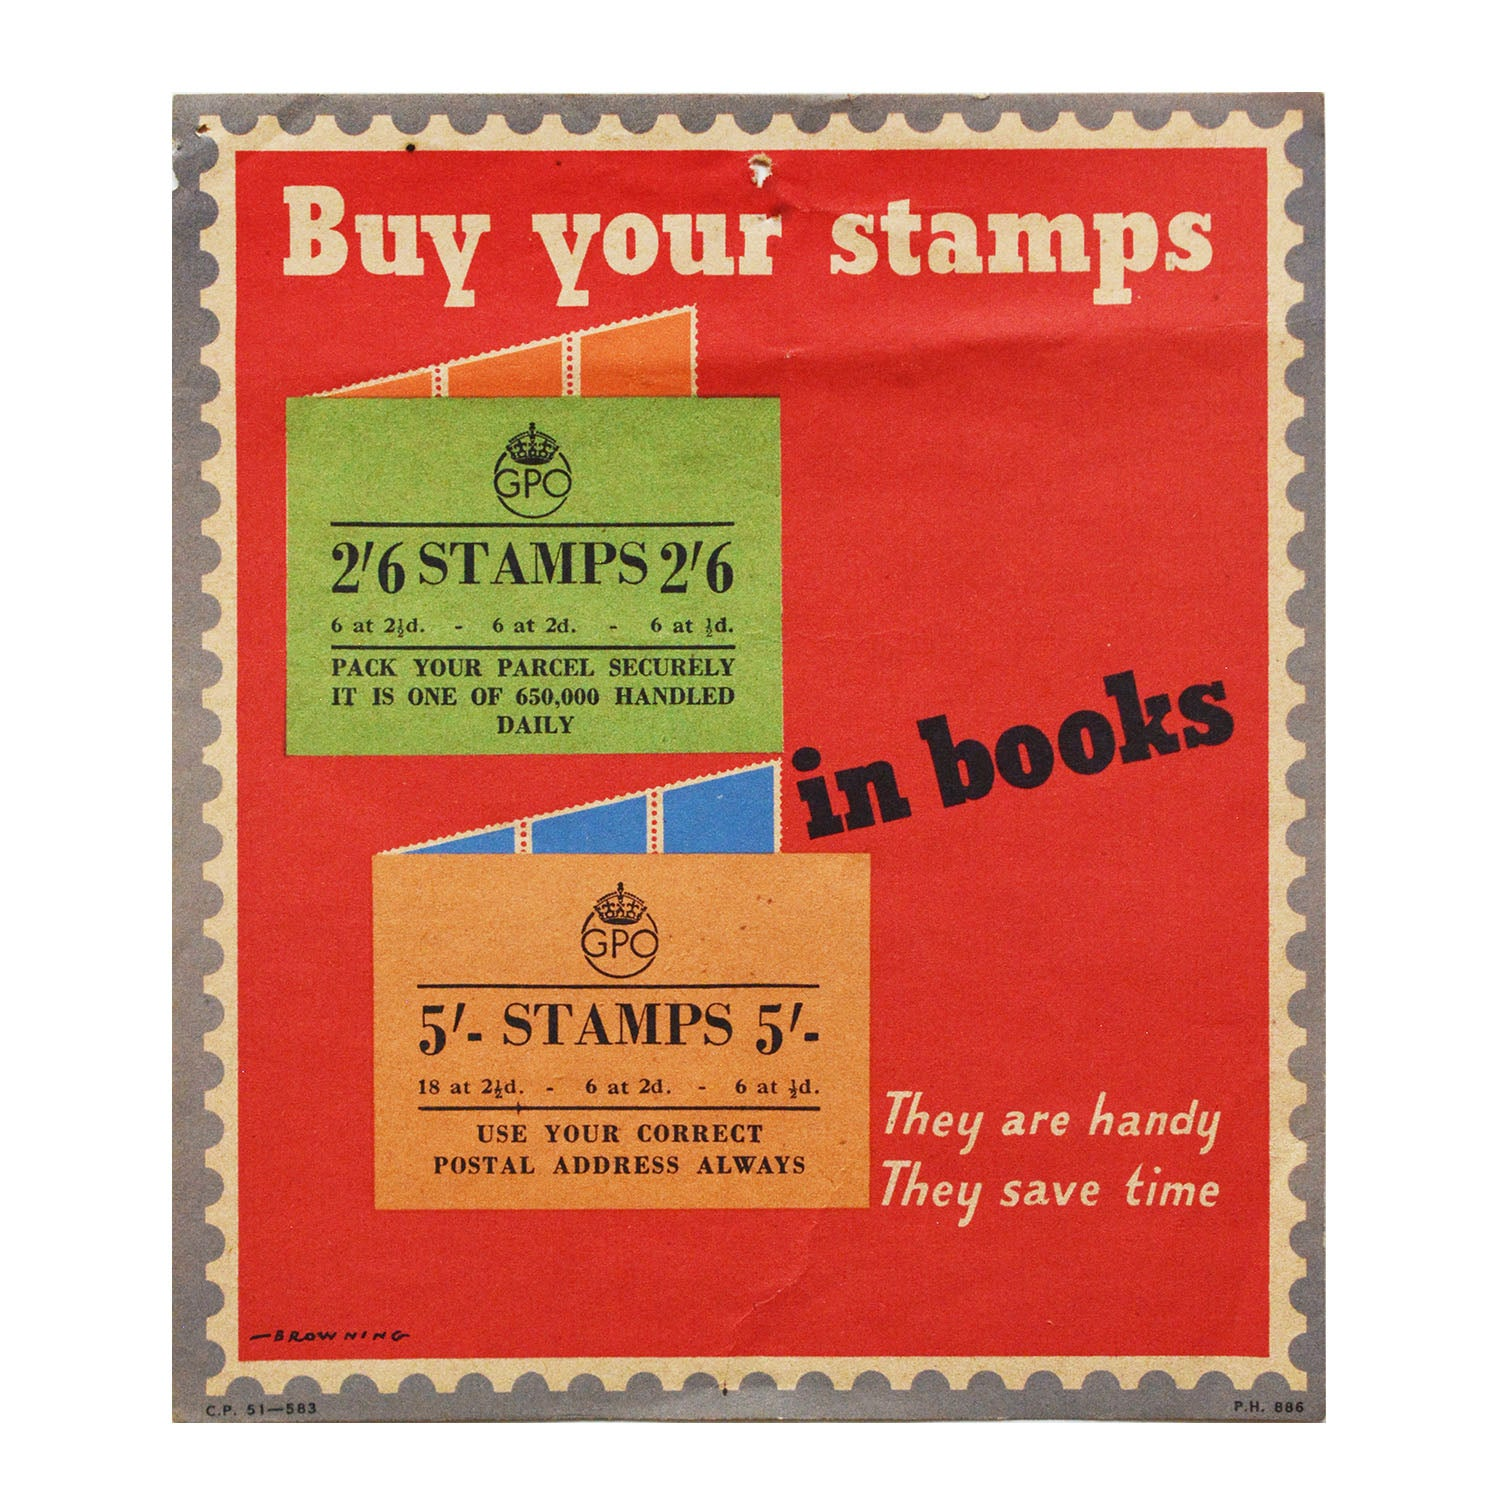 Original GPO poster Buy your stamps in books